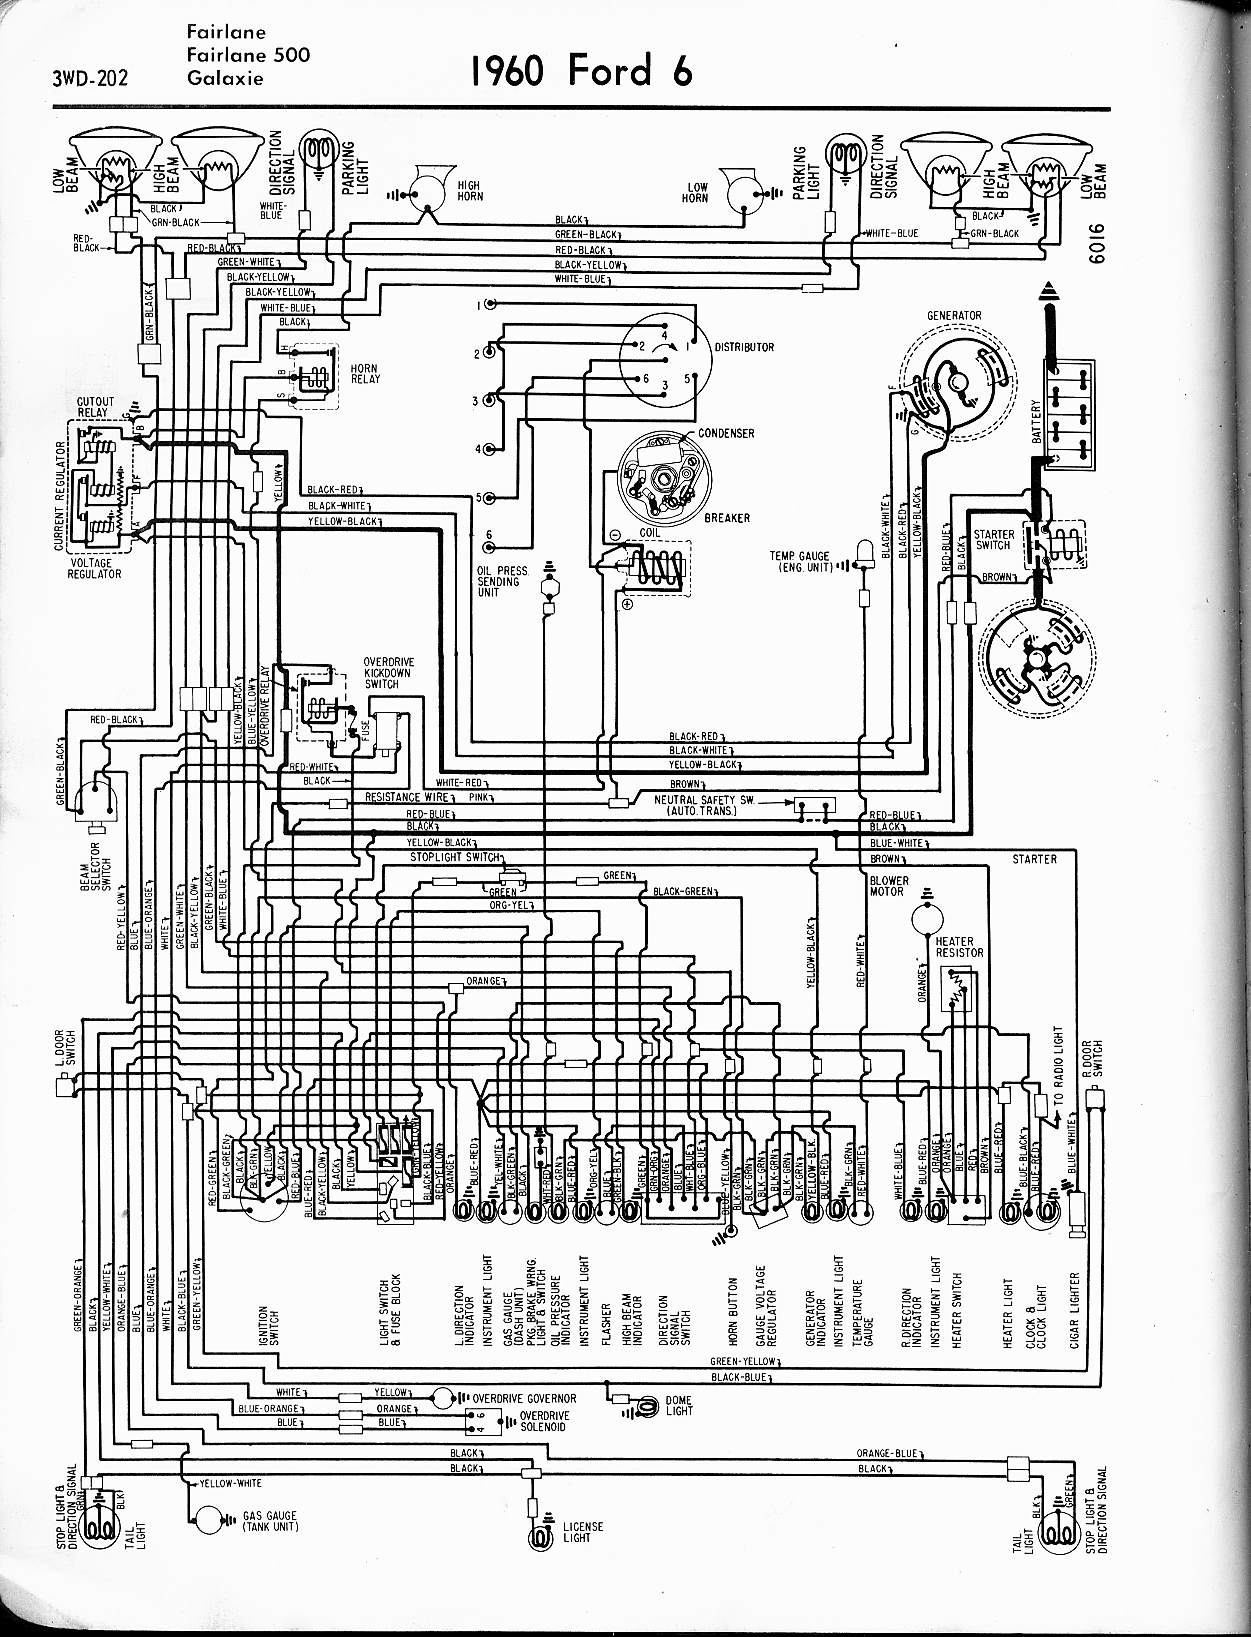 MWire5765 202 57 65 ford wiring diagrams free ford wiring diagrams online at bayanpartner.co